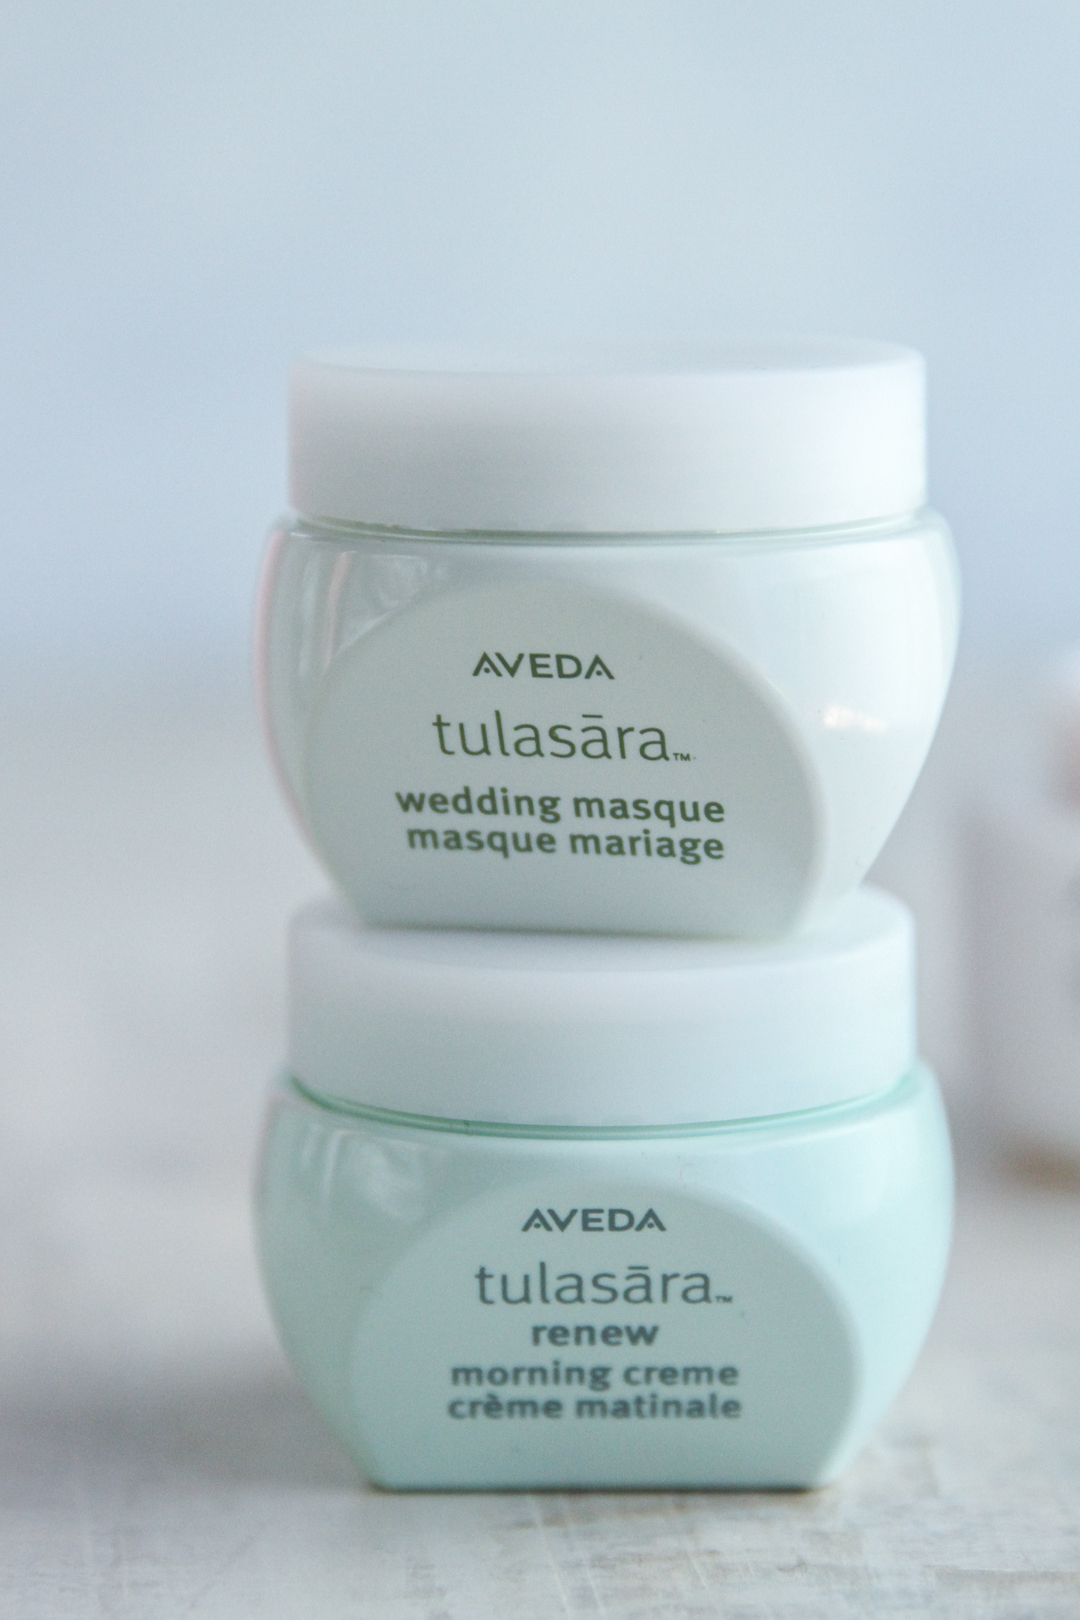 Wedding masque moisturizer, aveda moisturizer, products for very dry skin